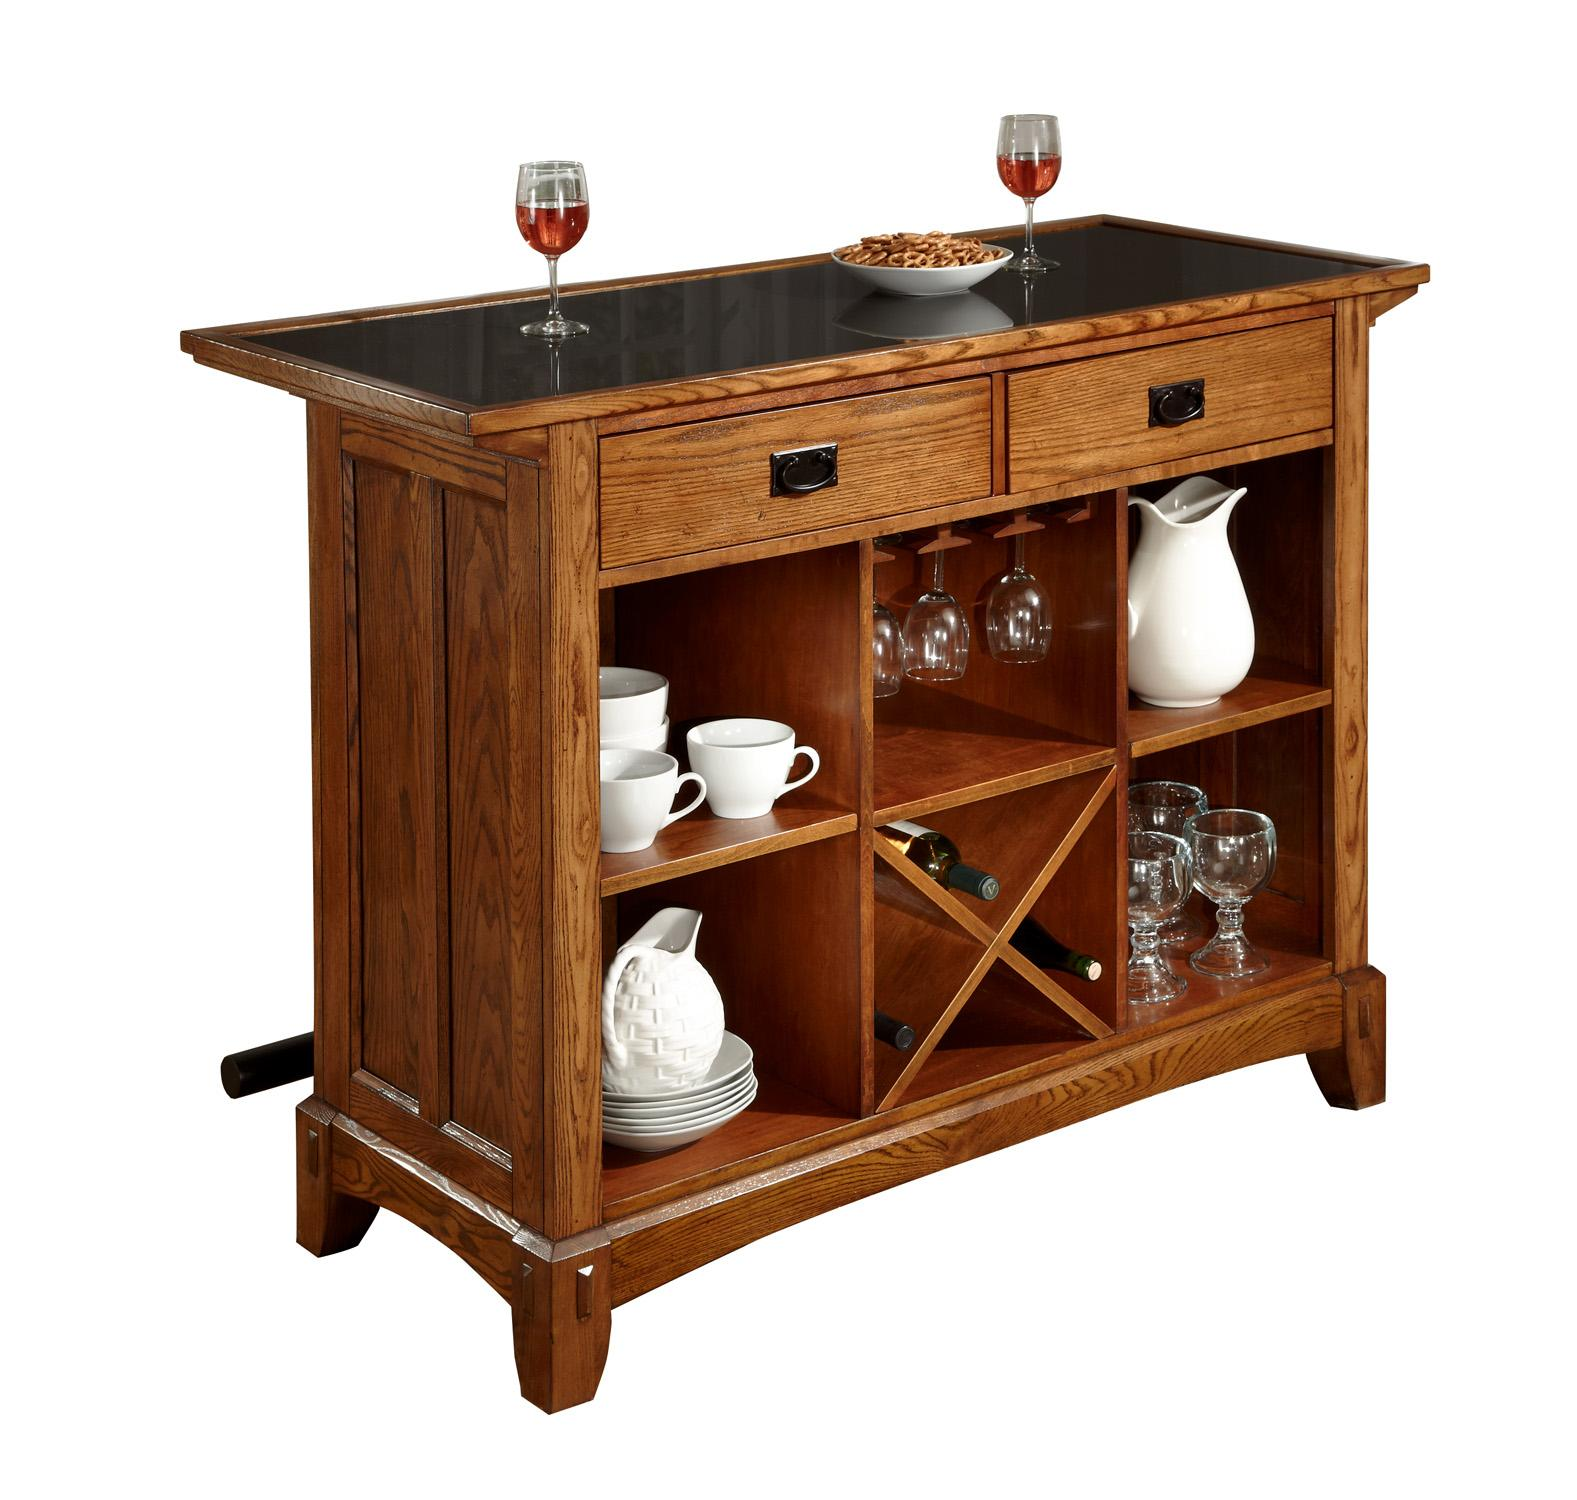 Mission style home bar